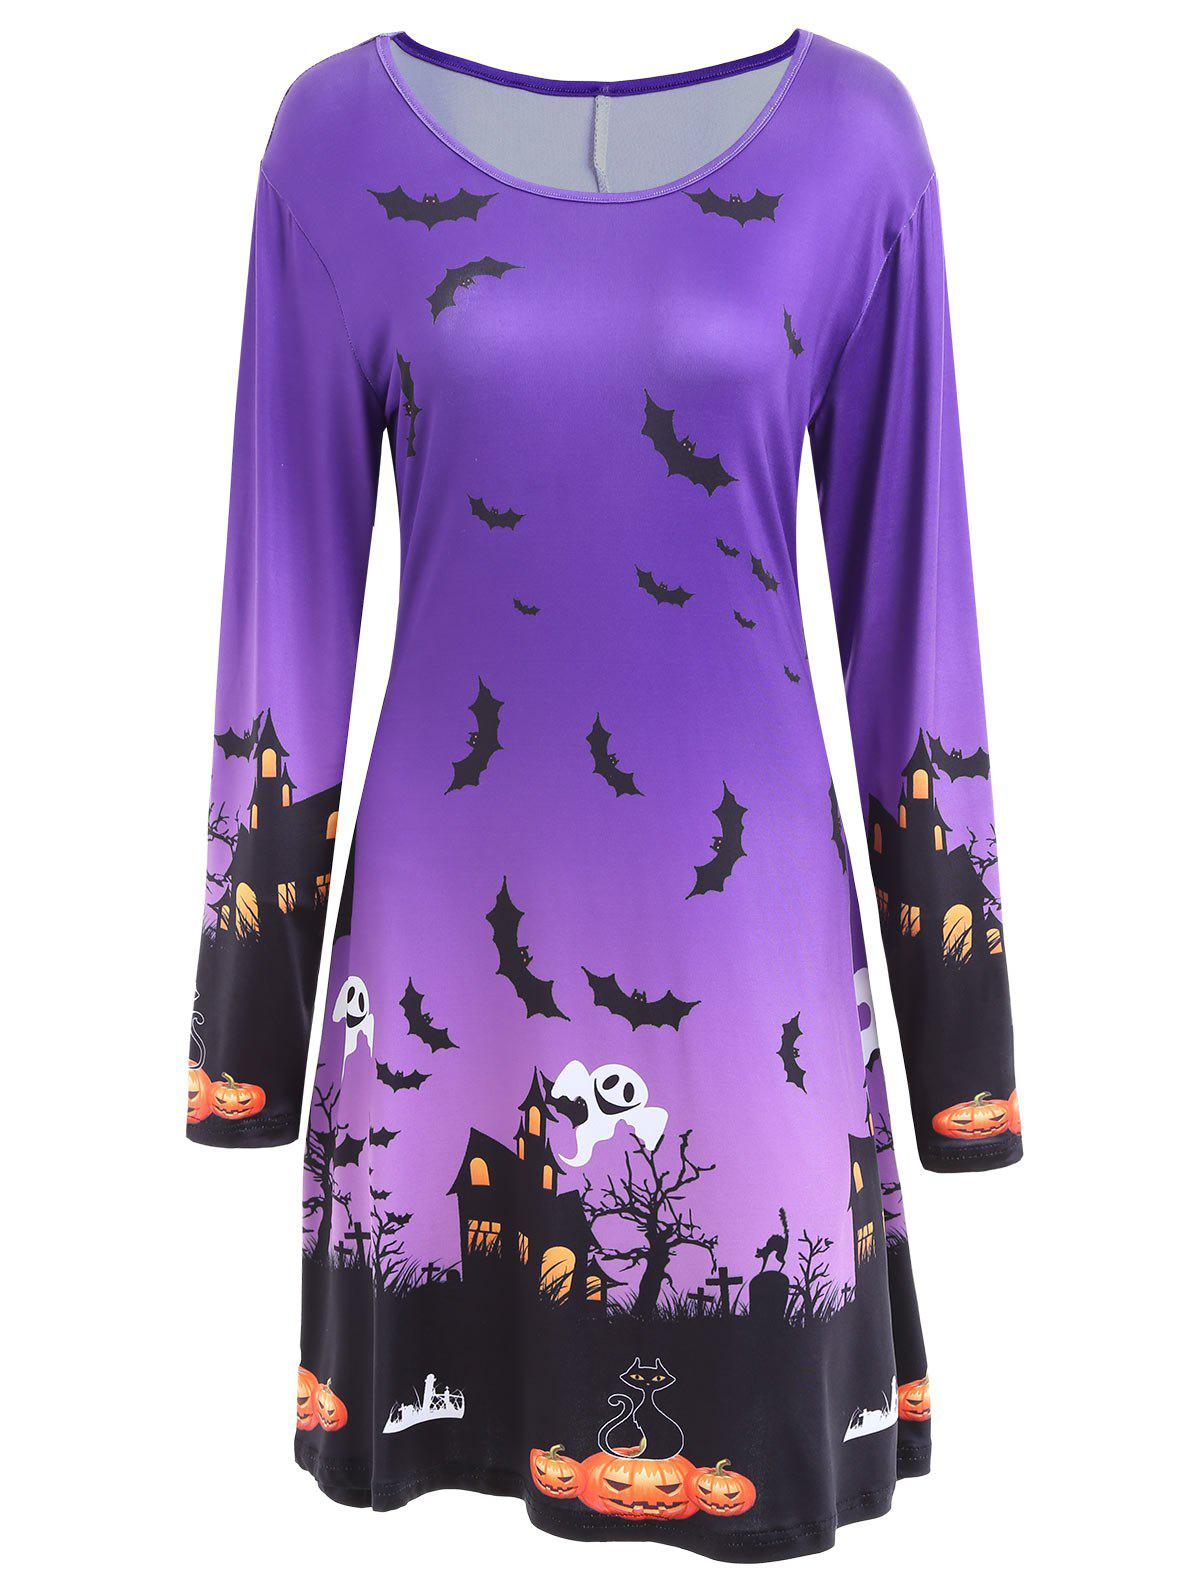 Pumpkin Bat Print Long Sleeve Halloween Swing Dress - PURPLE M